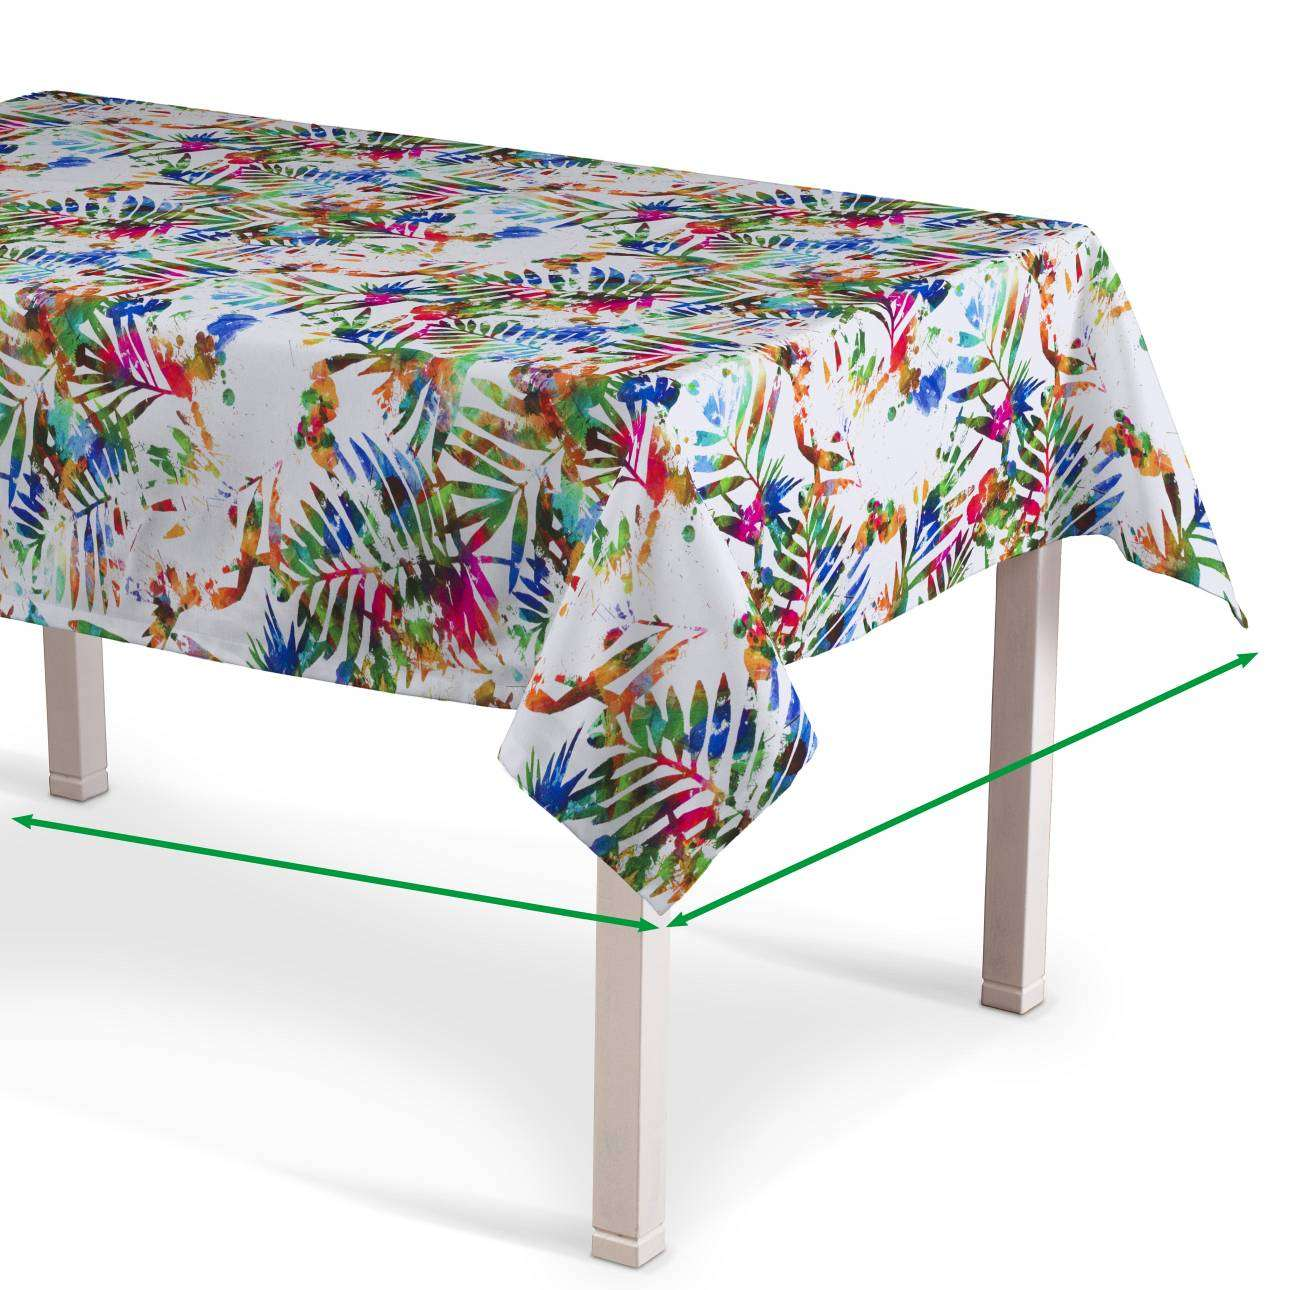 Rectangular tablecloth in collection New Art, fabric: 140-22